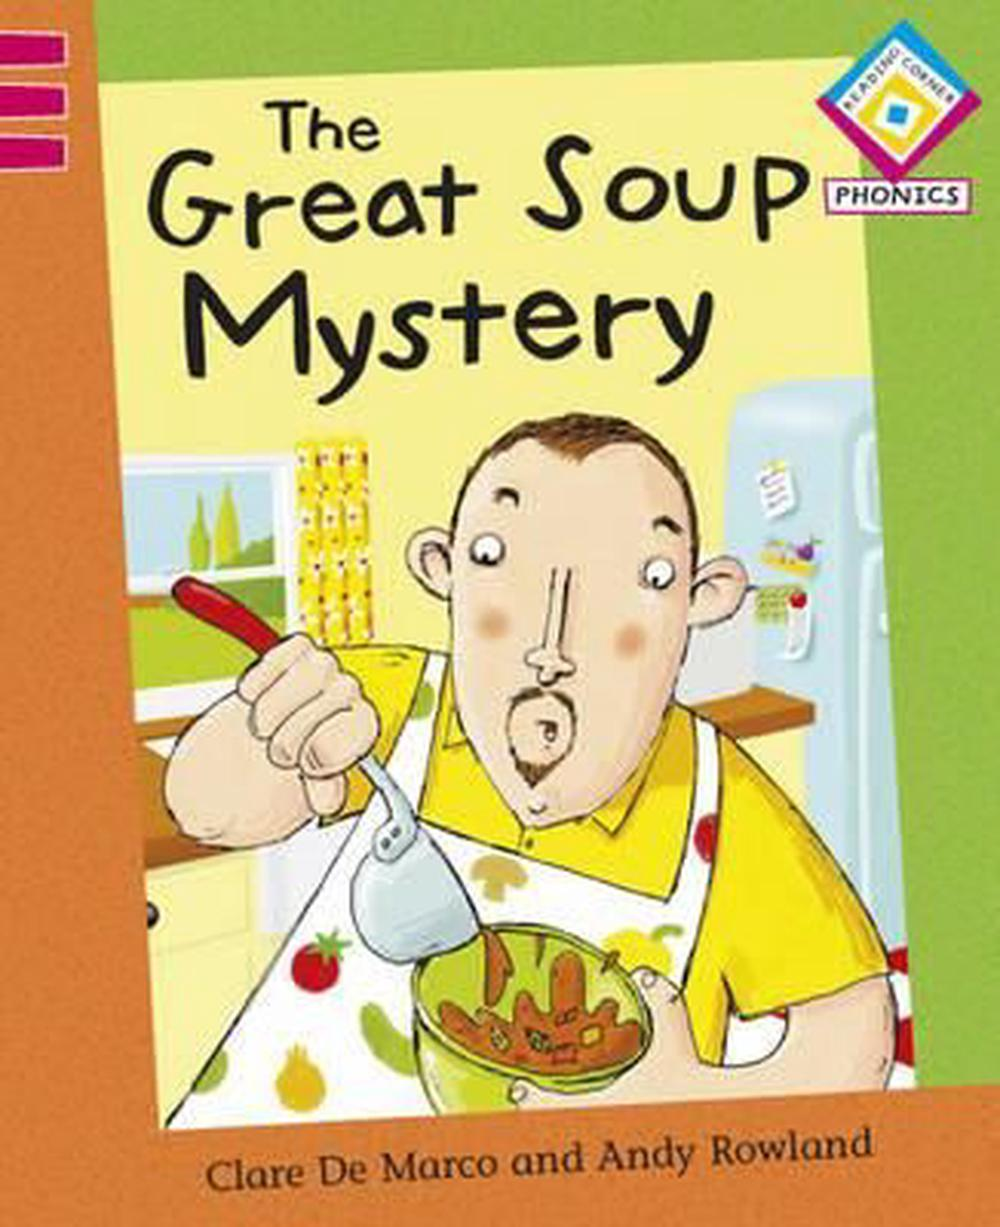 The Great Soup Mystery by Clare De Marco, Paperback, 9780749691813